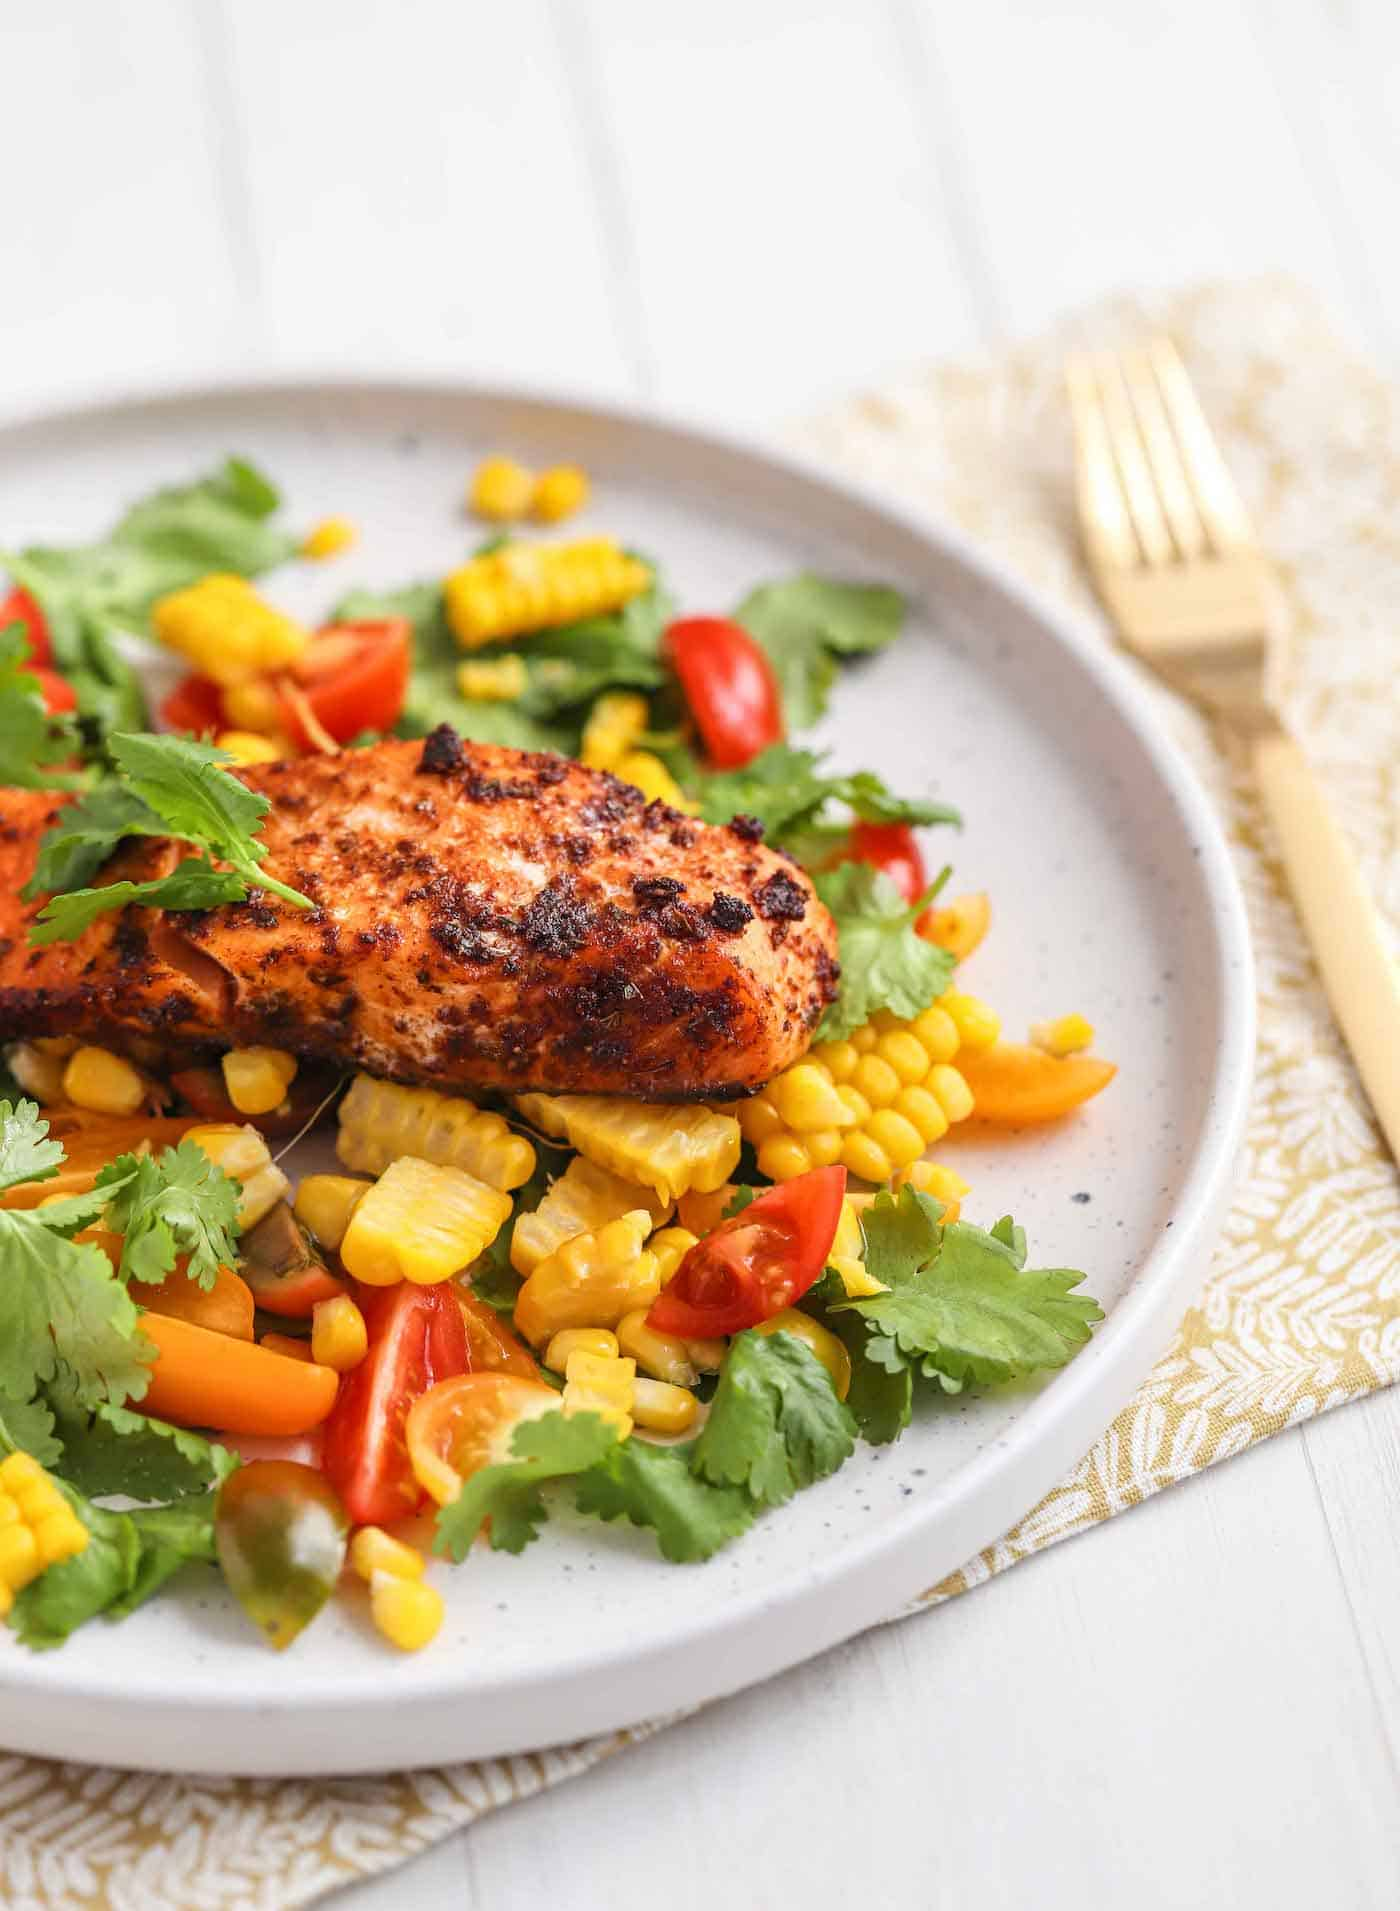 salmon served with salad and corn